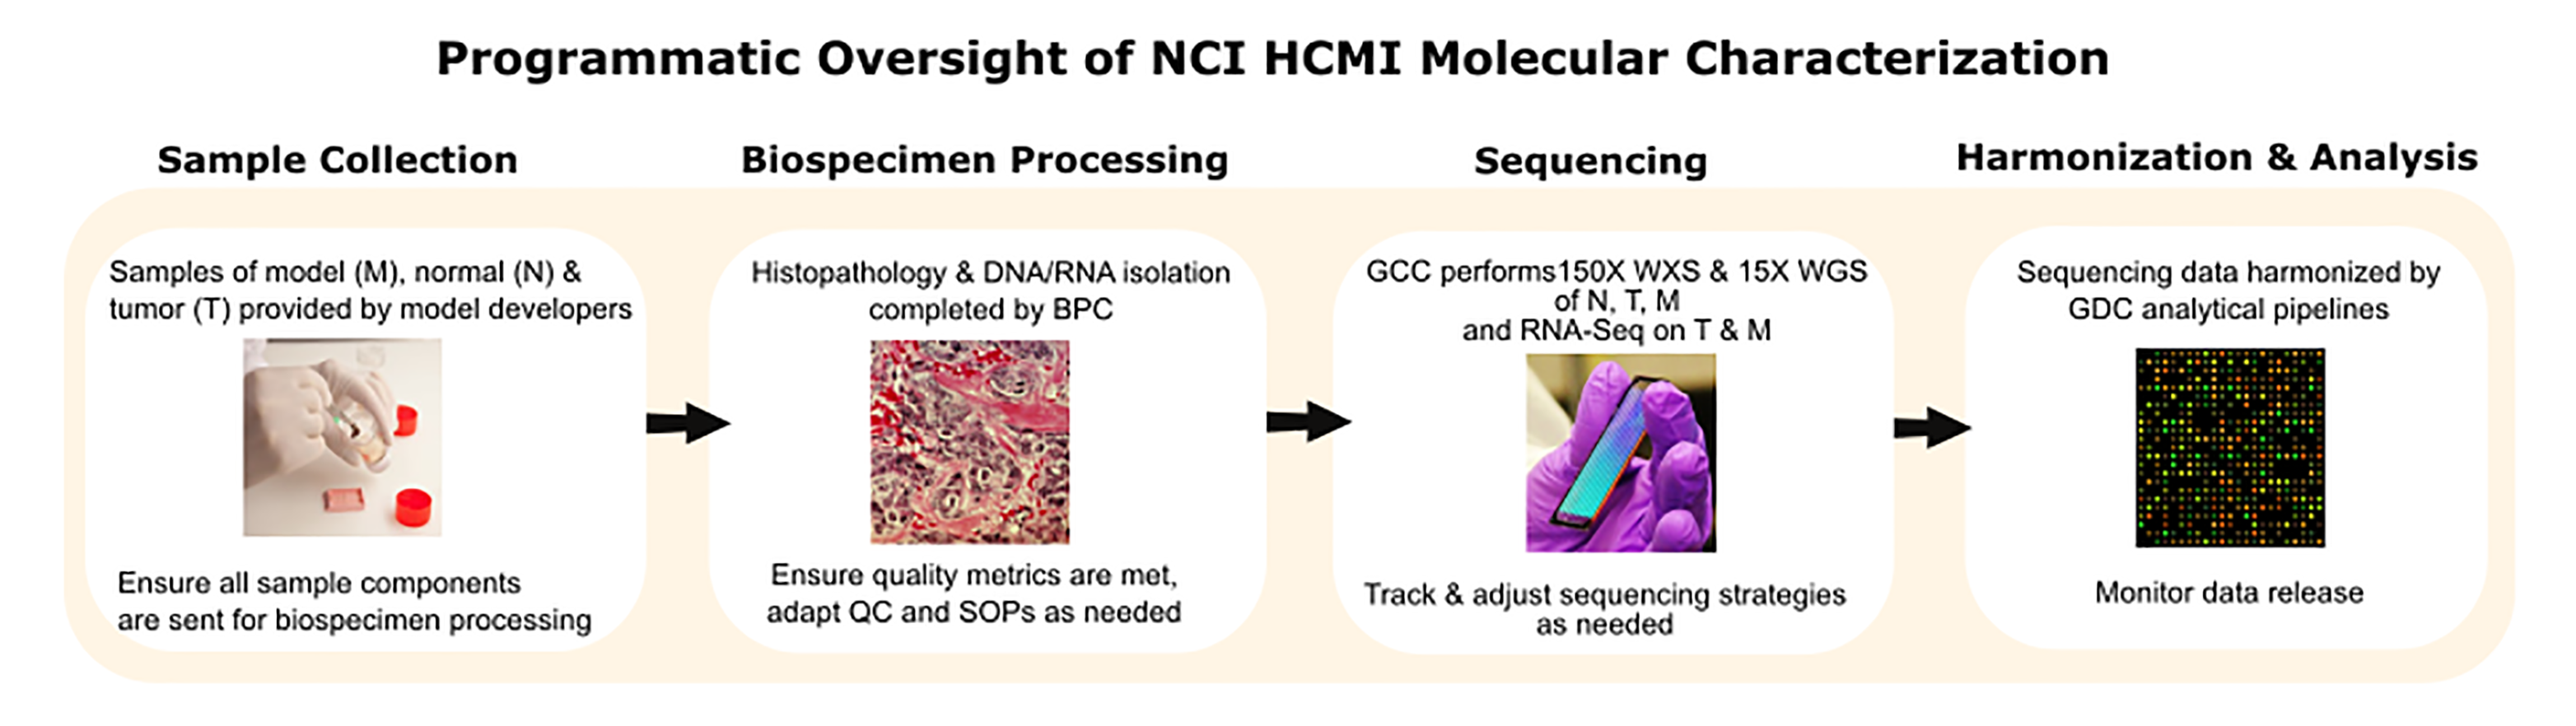 Programmatic Oversight of NCI HCMI Molecular Characterization